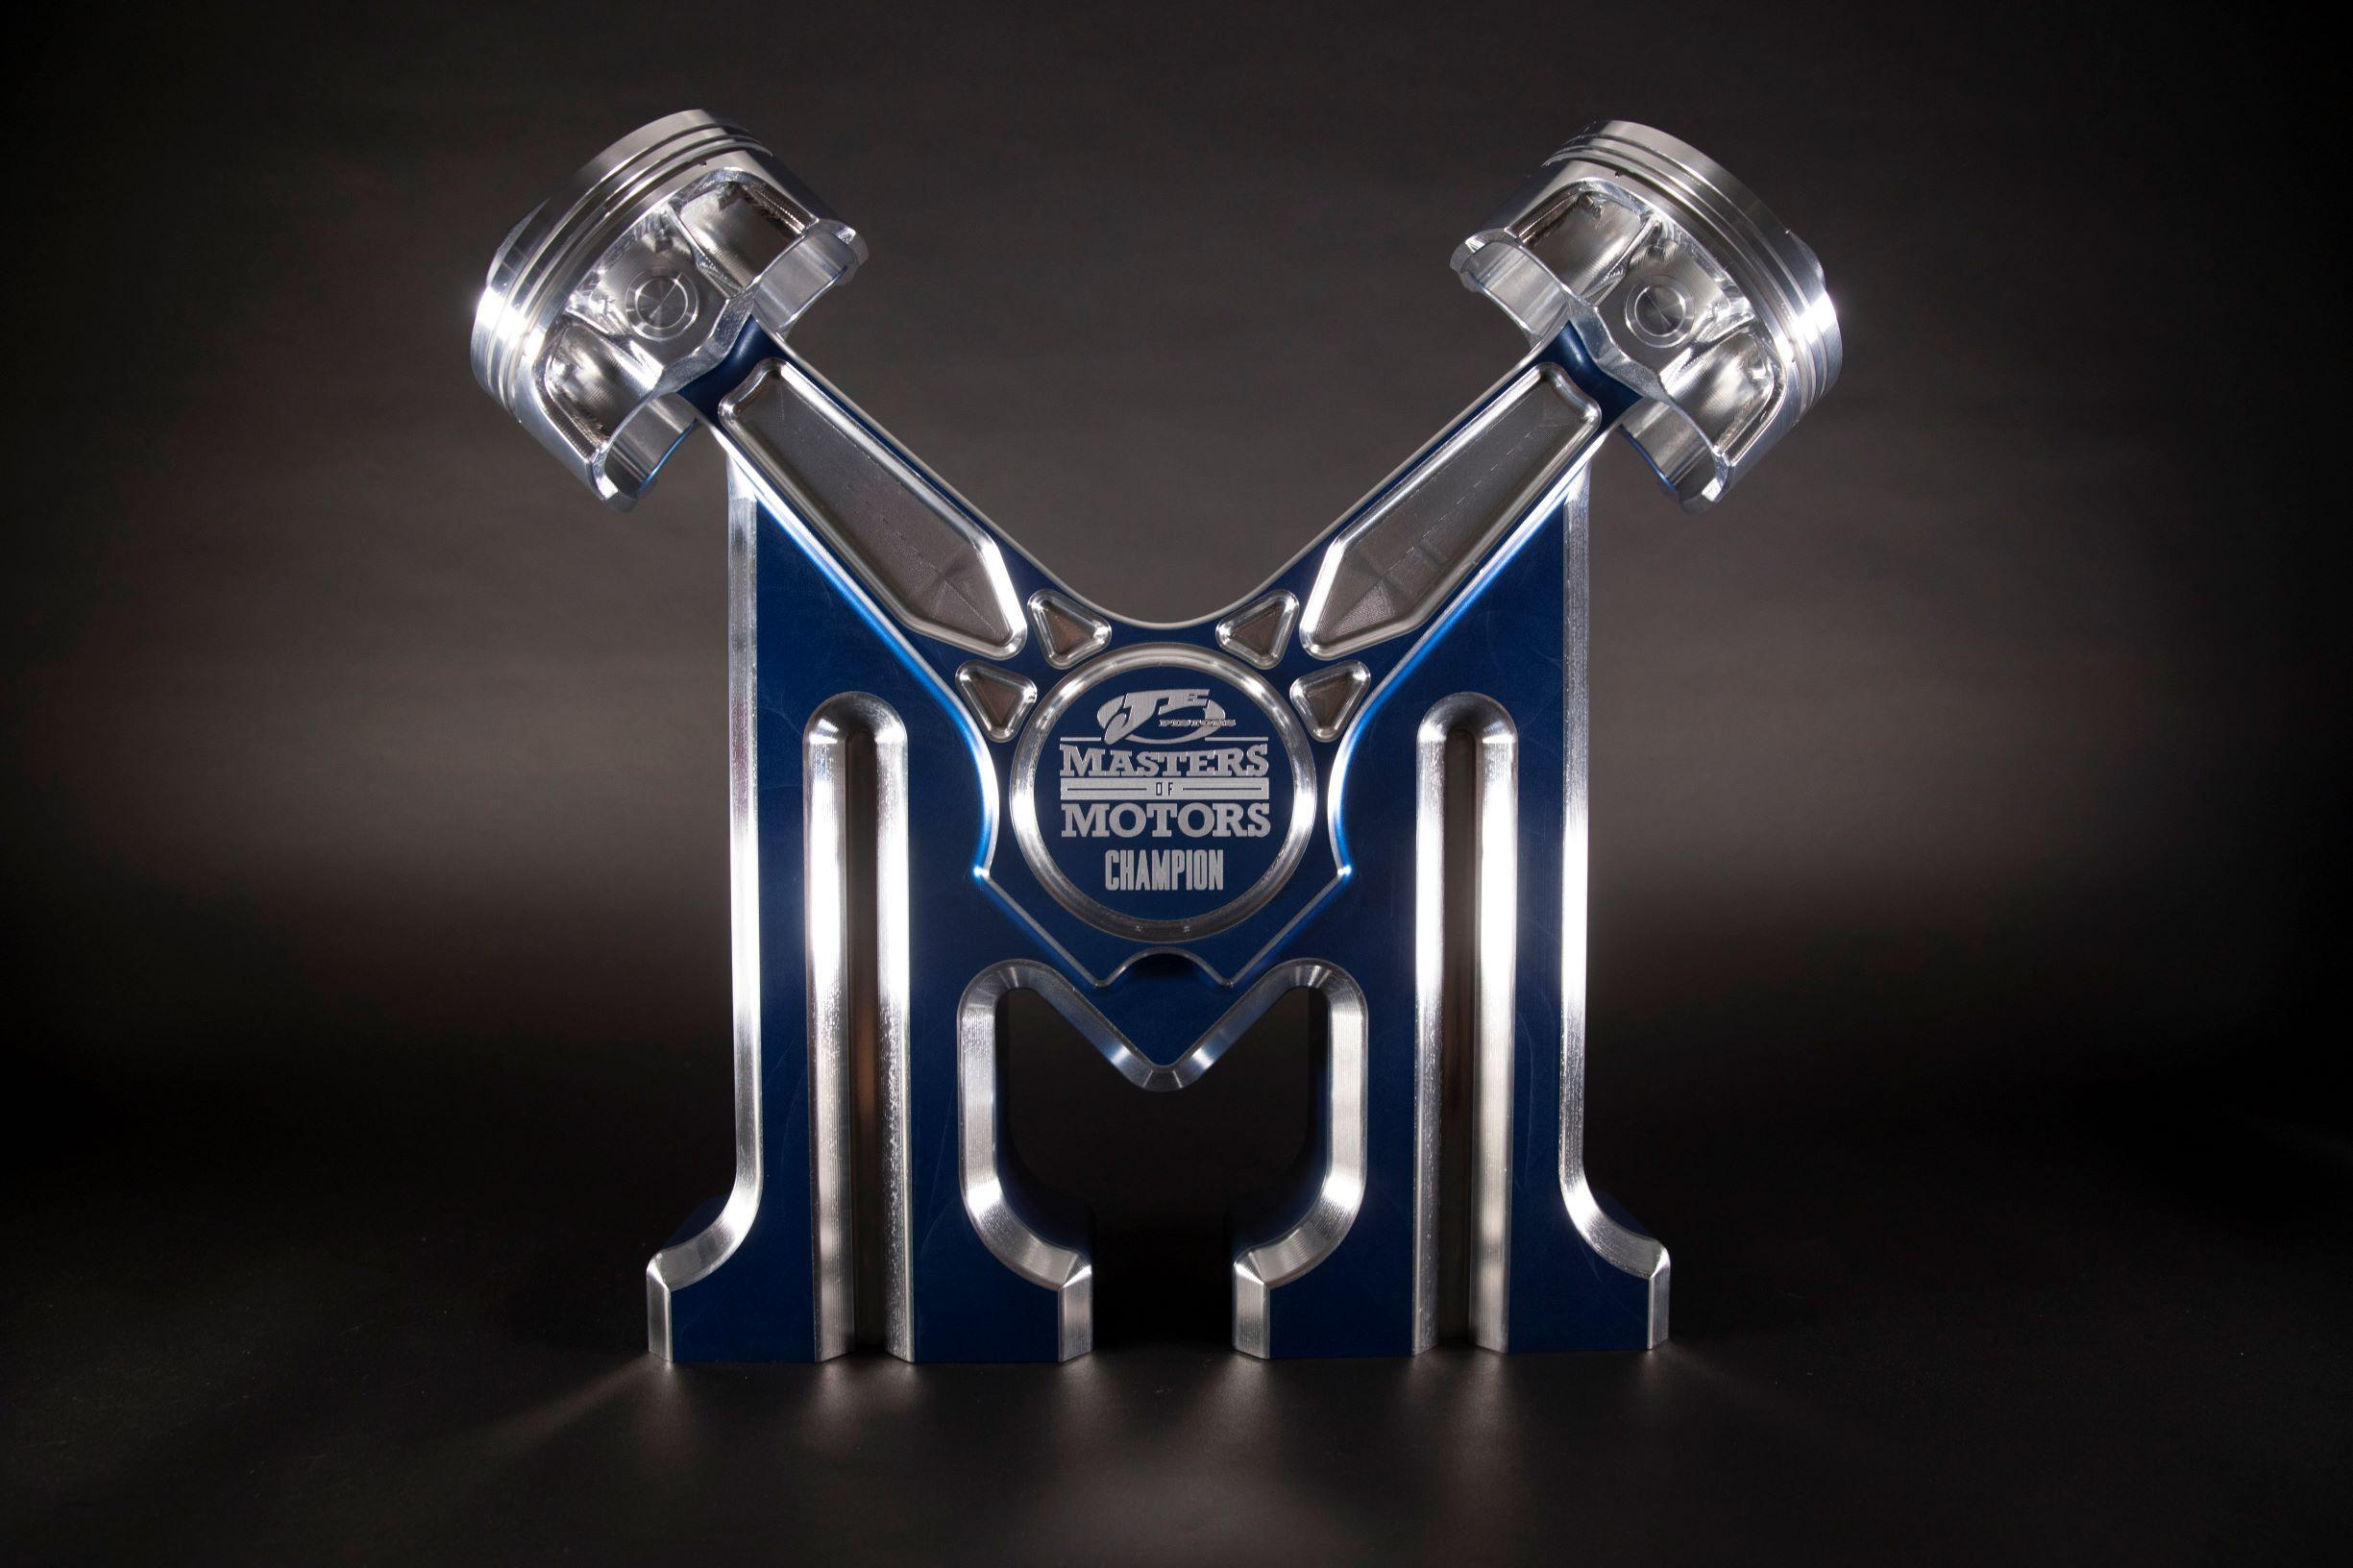 Masters_of_Motors_Trophy_JE_Pistons